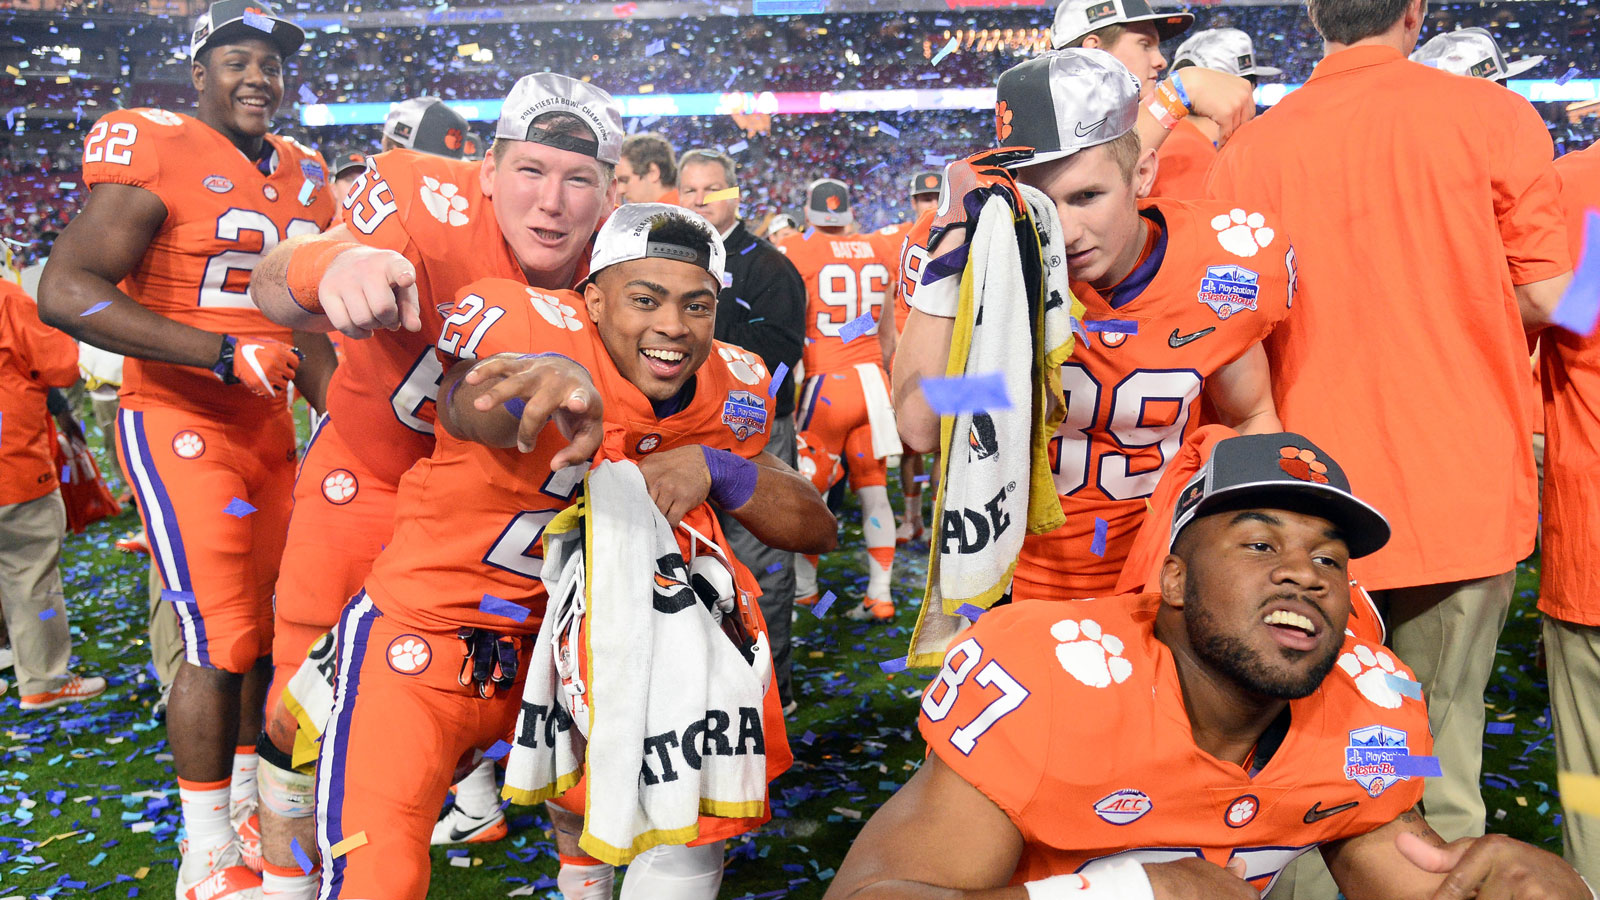 Pros on Alabama, public on Clemson in CFP title game